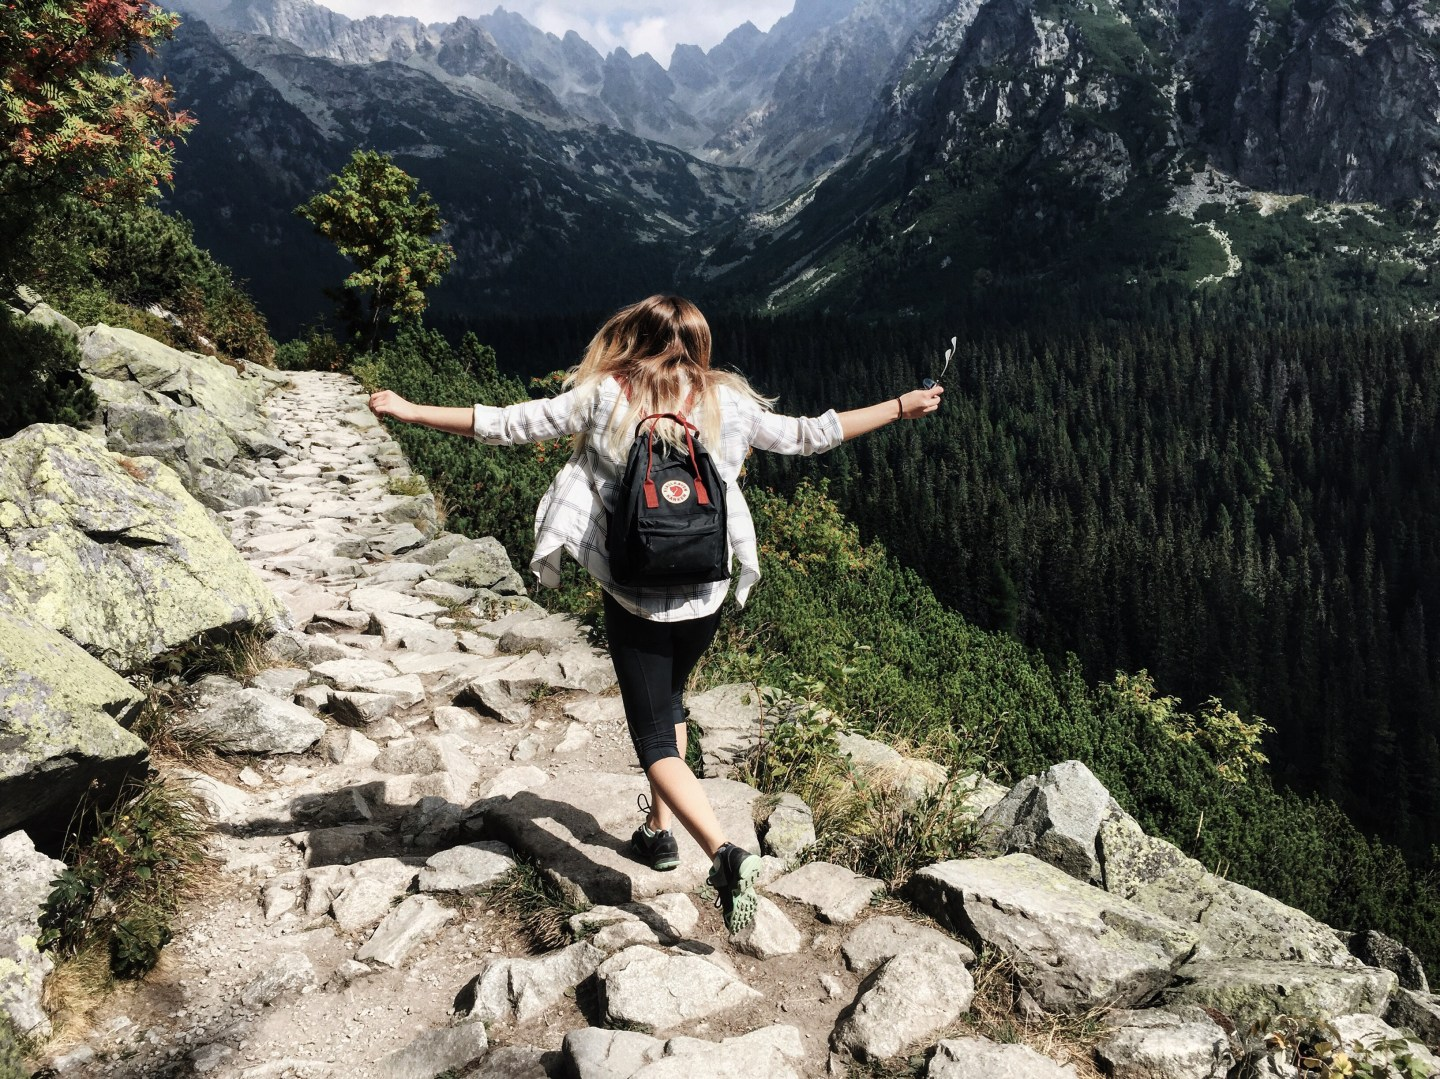 Enjoying Your Own Company: Benefits of Doing Things Alone